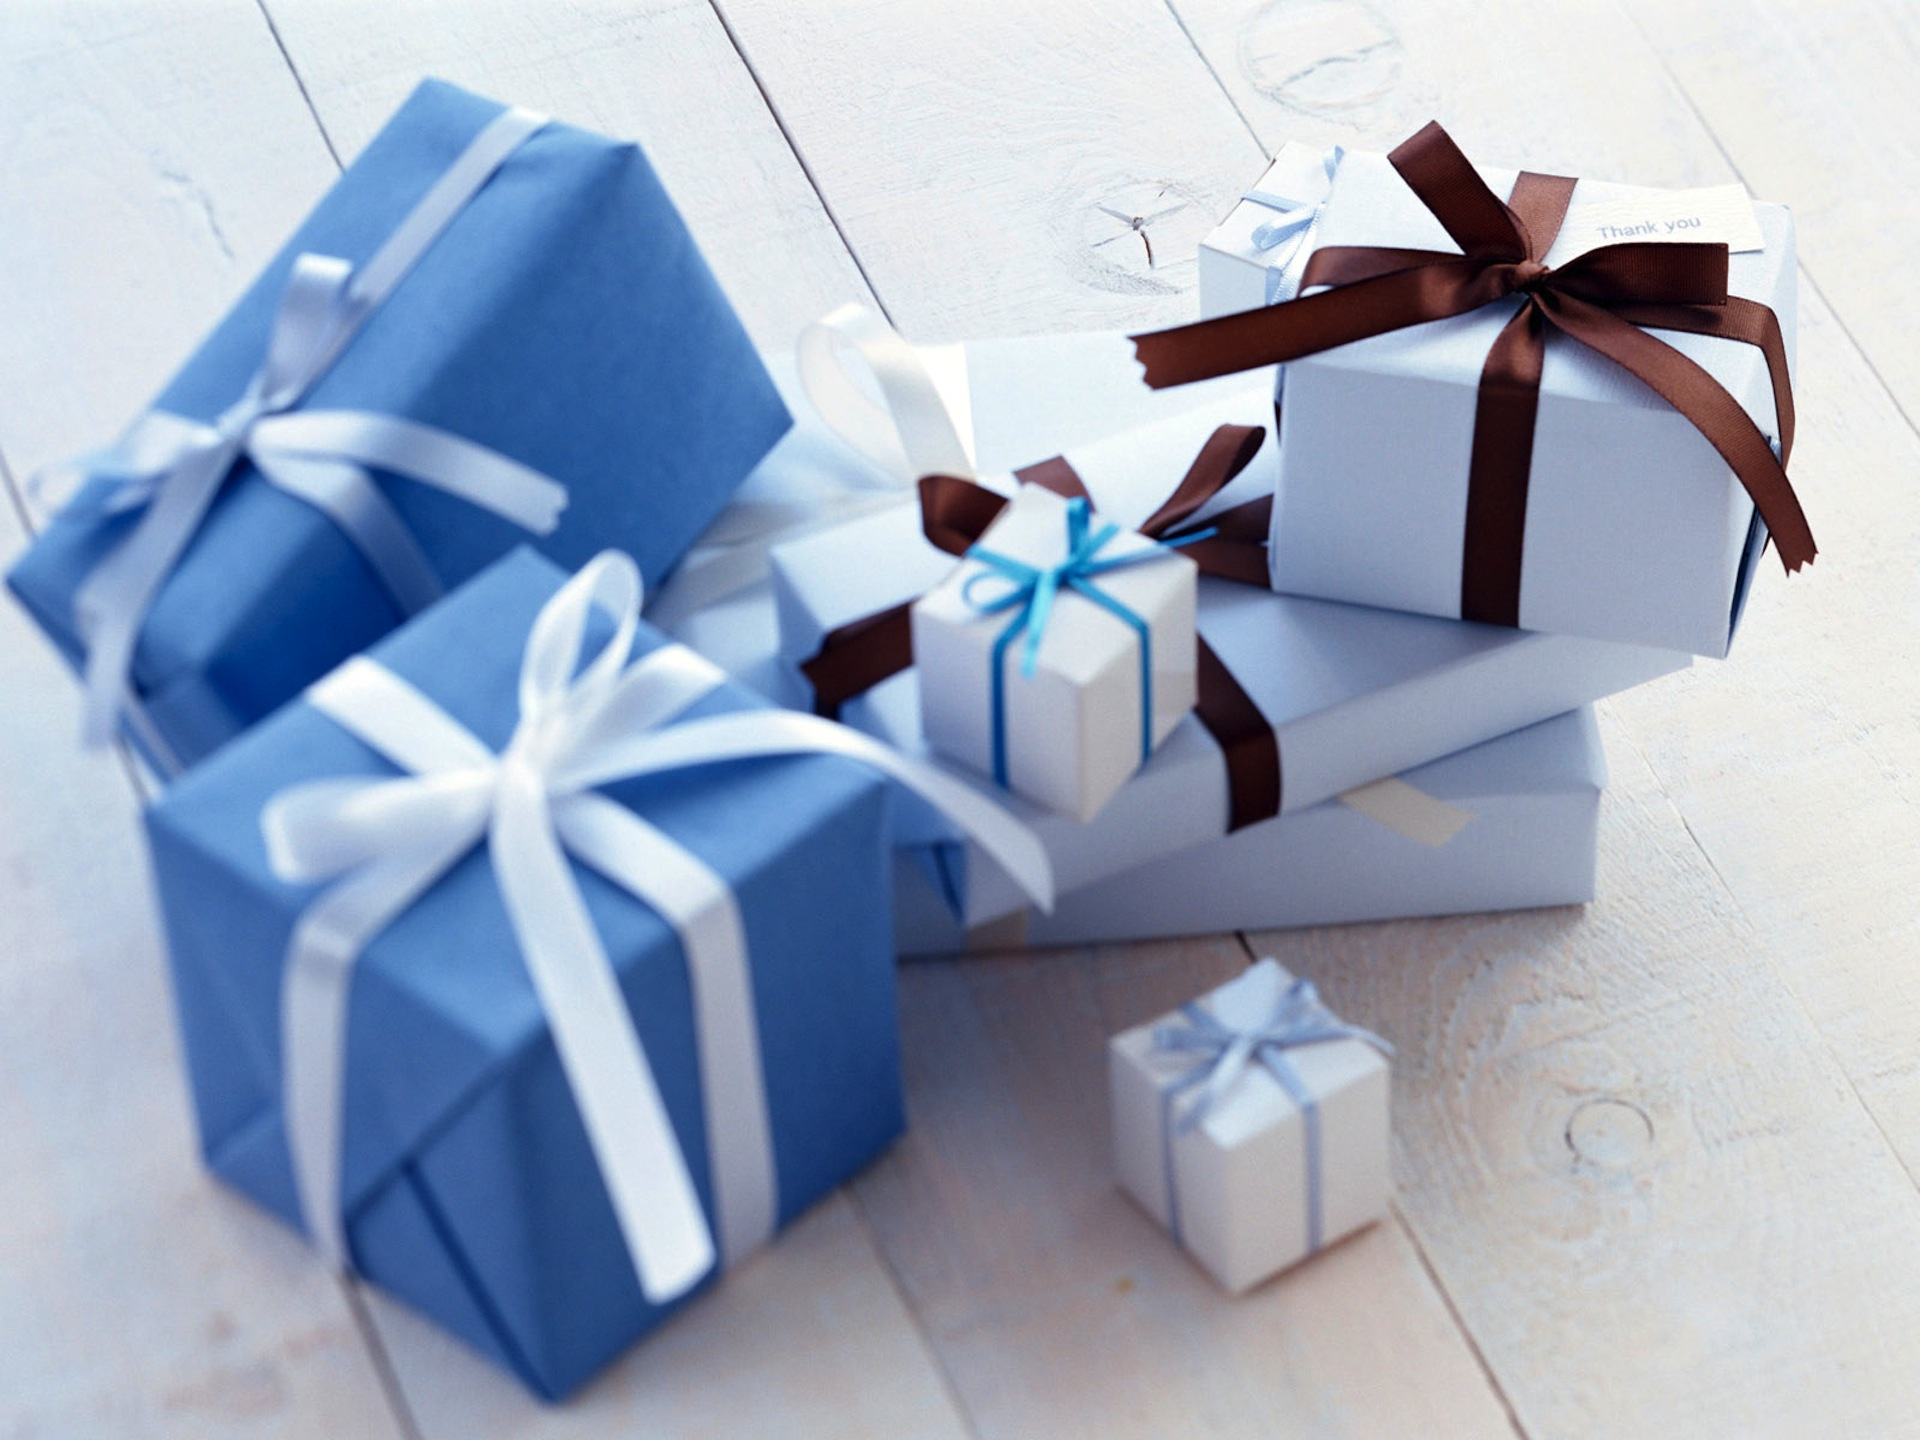 Gift Box Wallpaper 1920x1440 68331